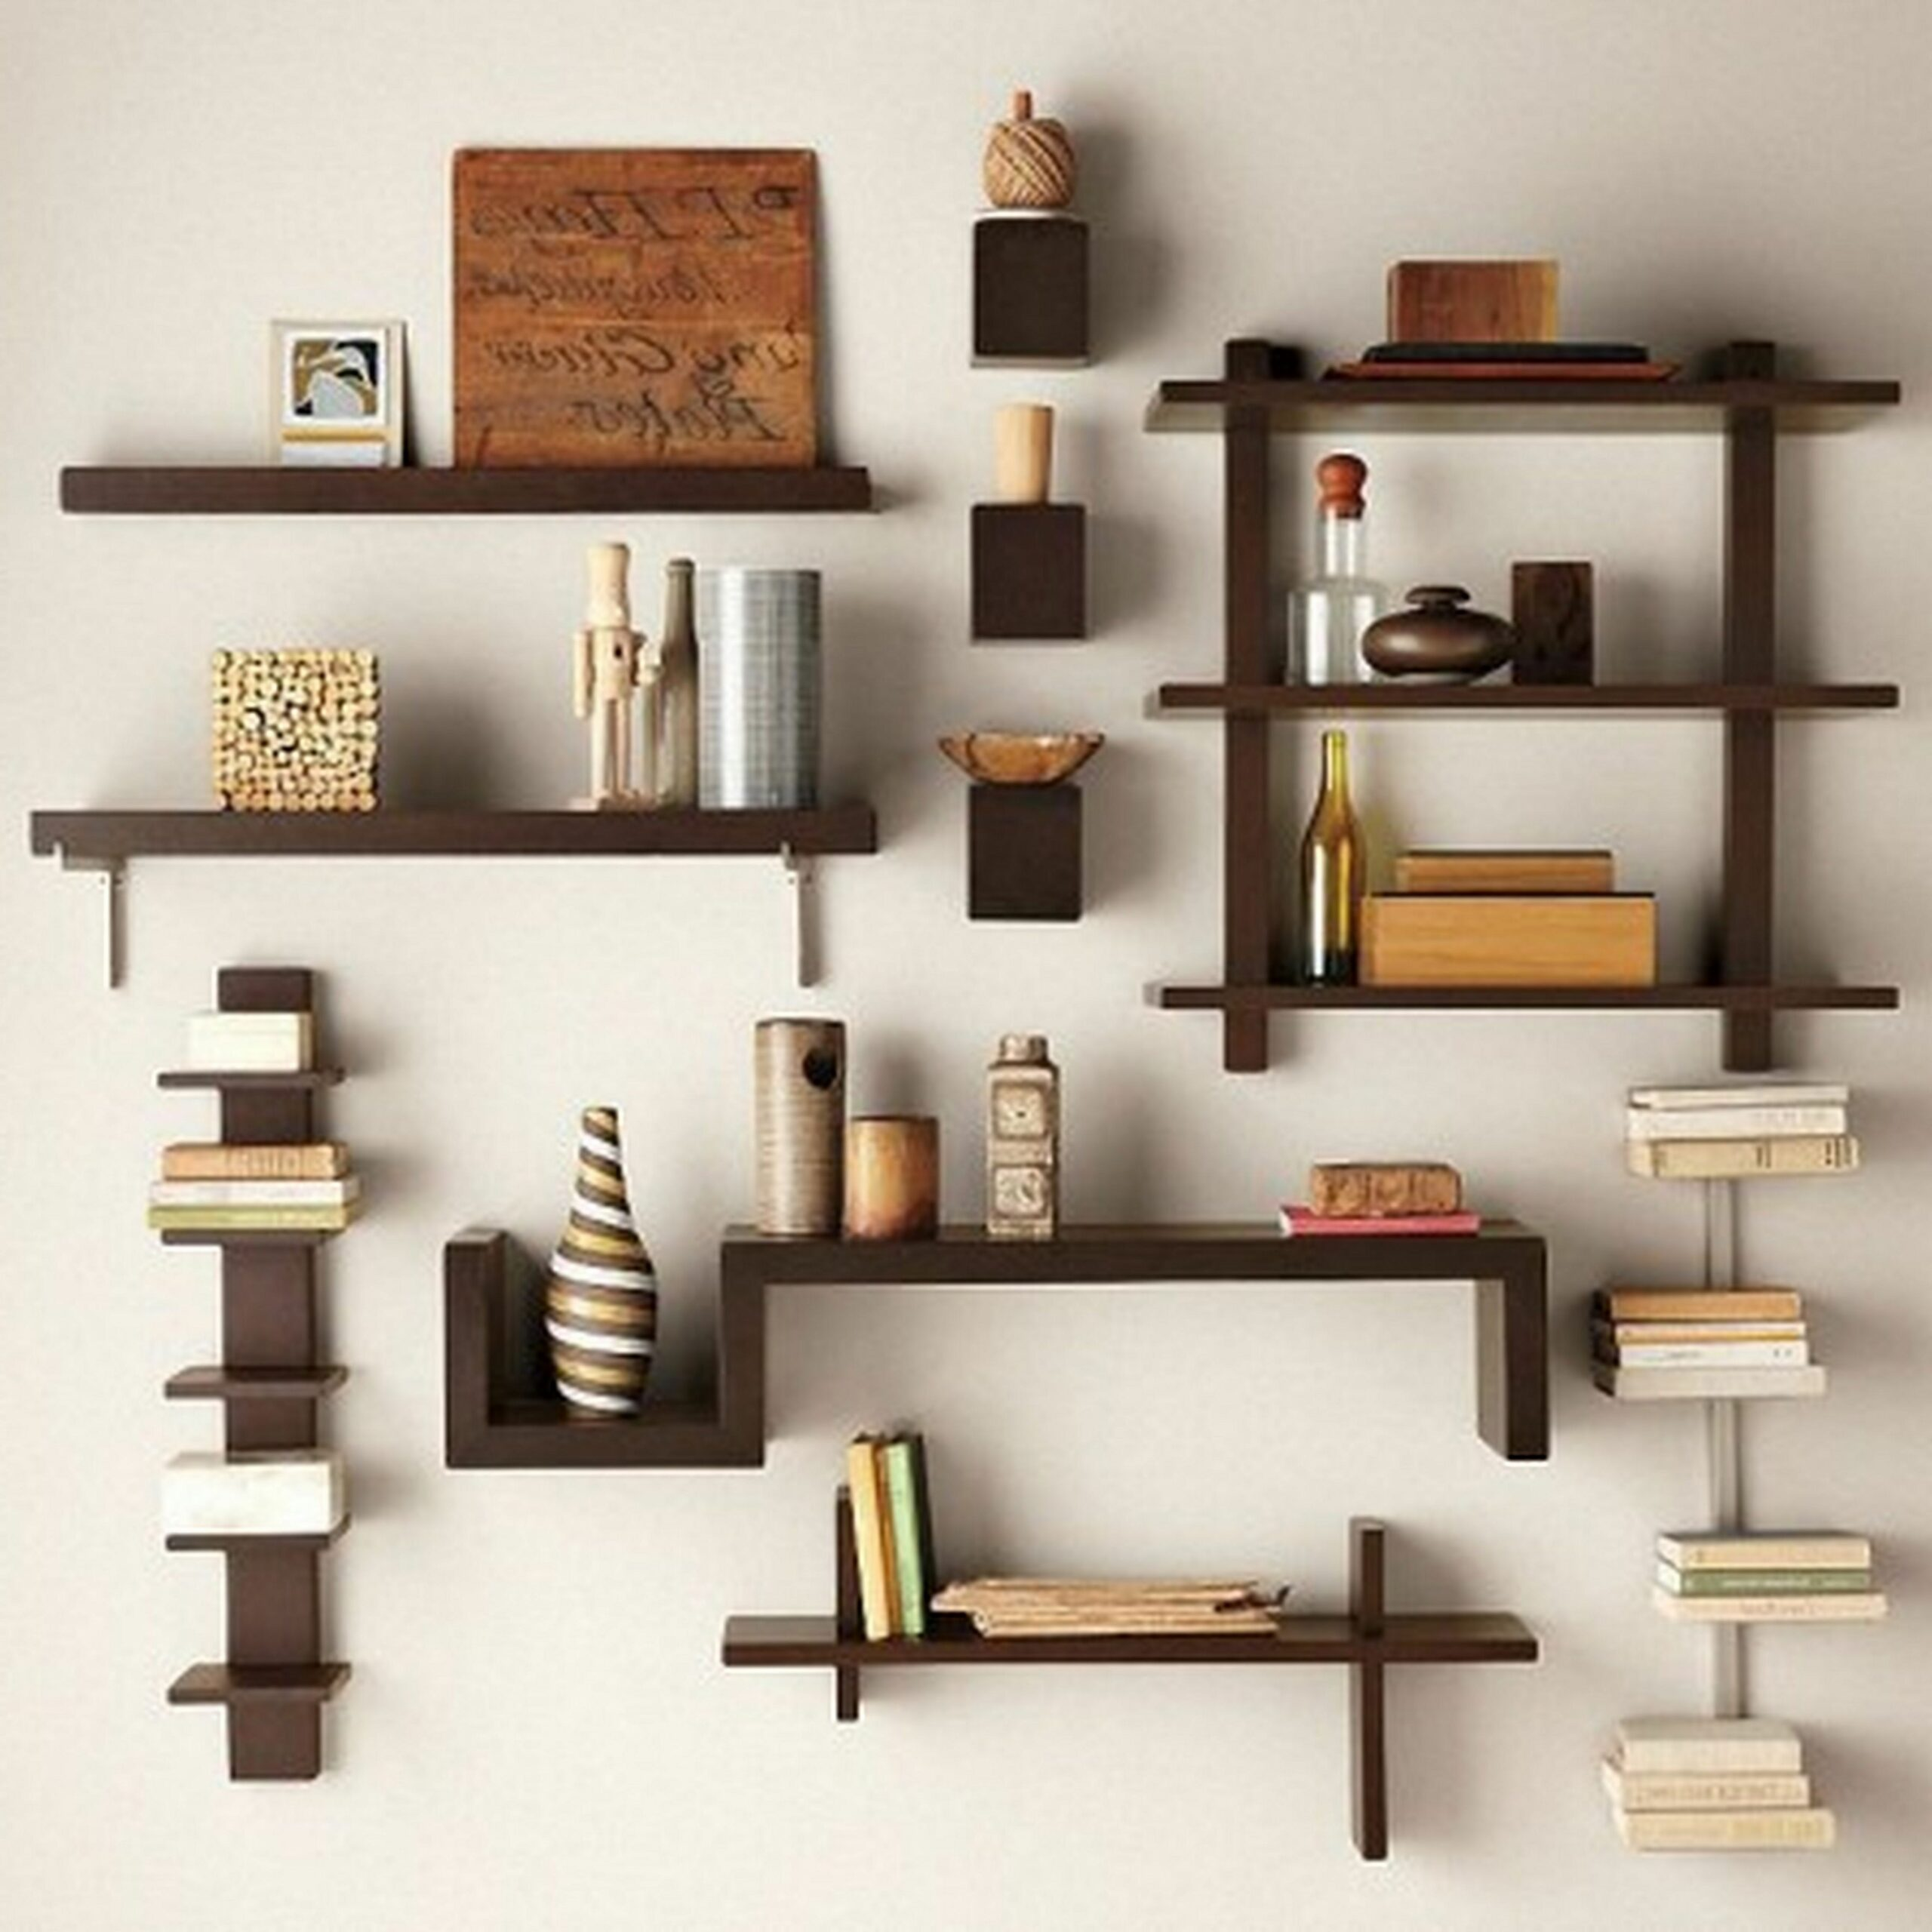 10 Creative Wall Shelves Design Ideas For Lovely Home Decoration ...